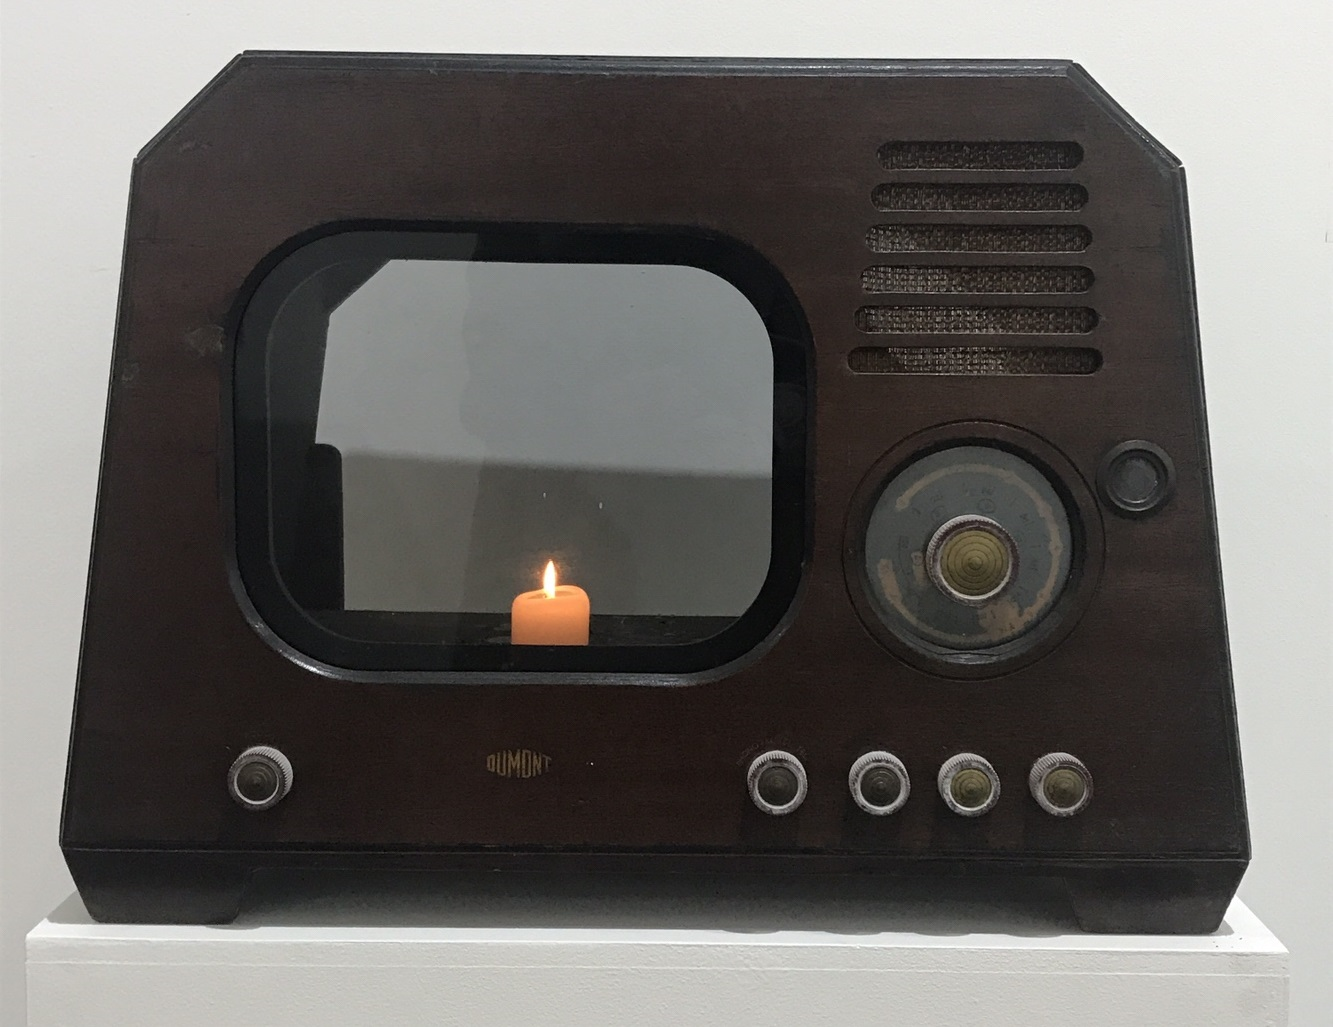 NameJune PAIK_TV Candle_Mixed Meda_60x51x44cm_1996